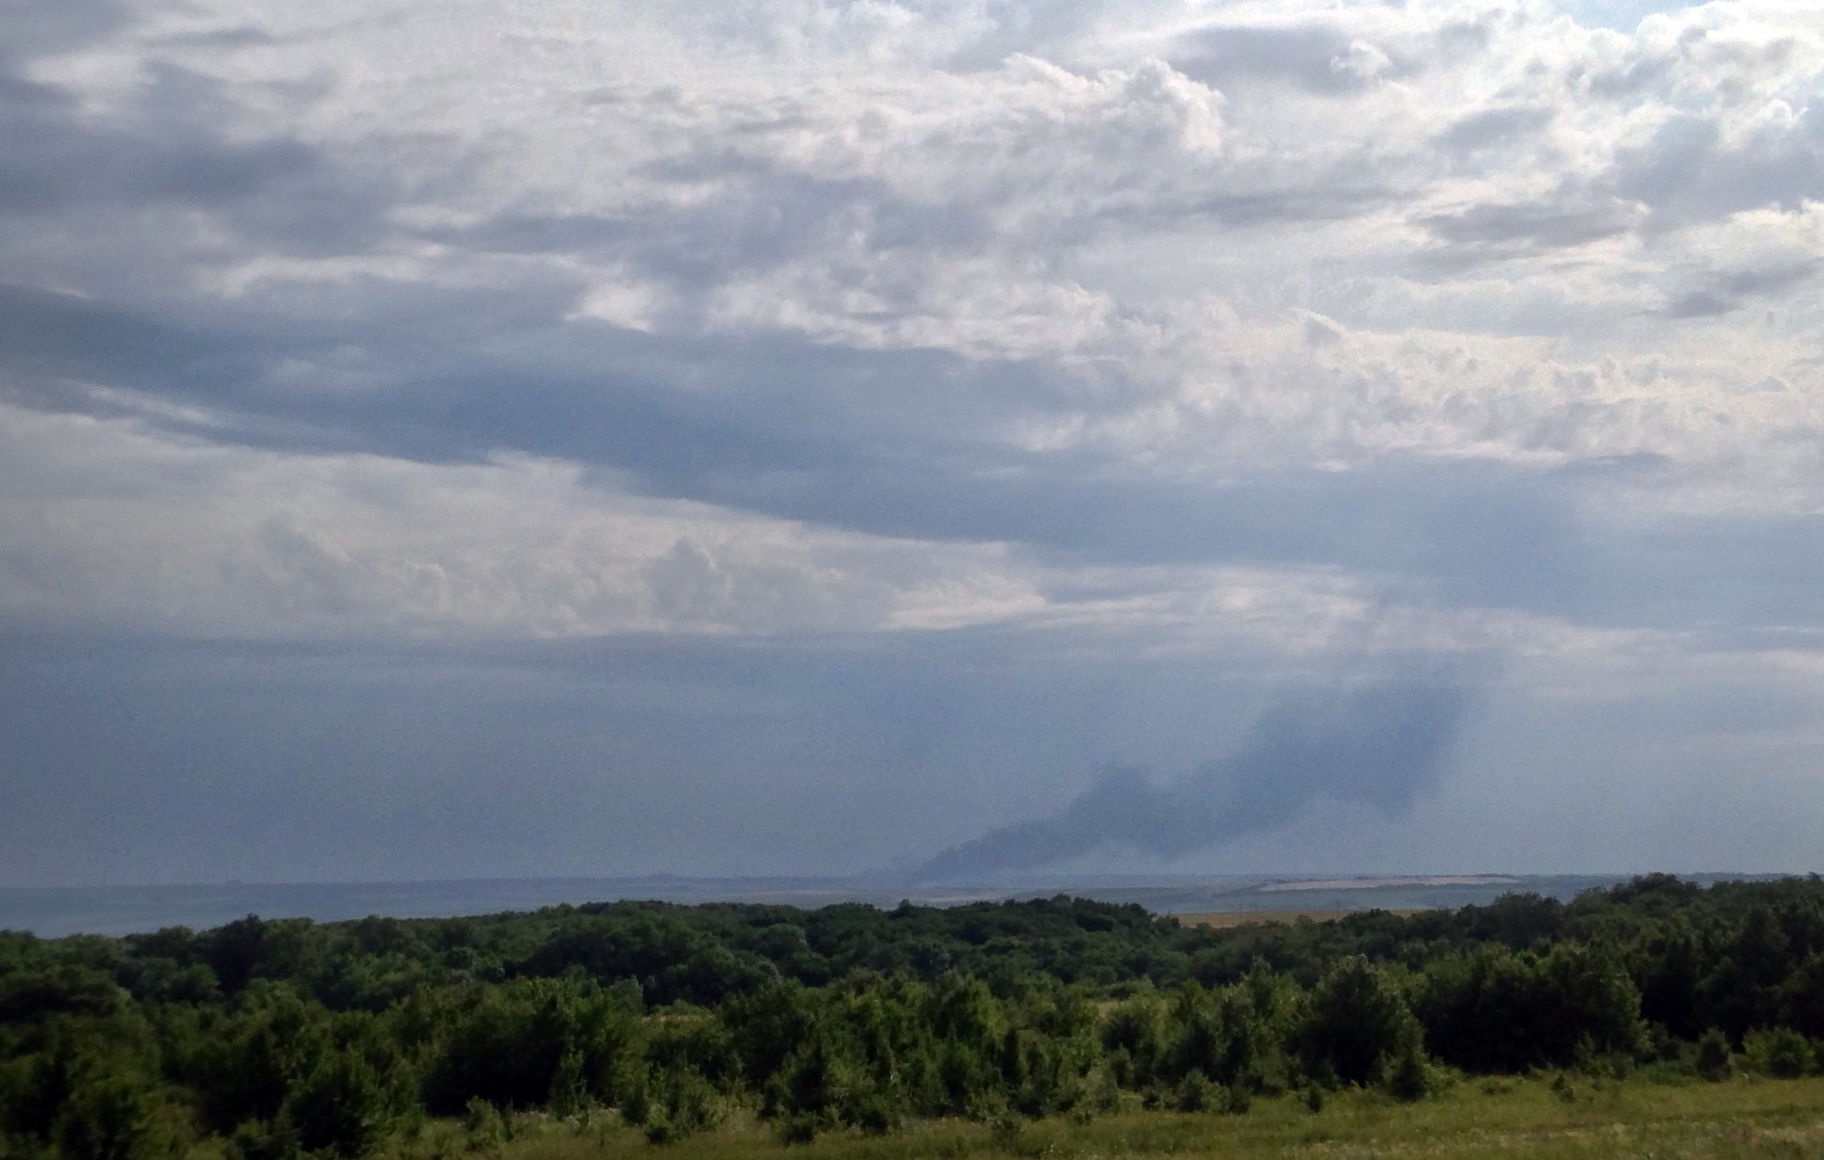 Smoke rises from where a Malaysia Airlines commercial plane crashed in eastern Ukraine on July 17, 2014.